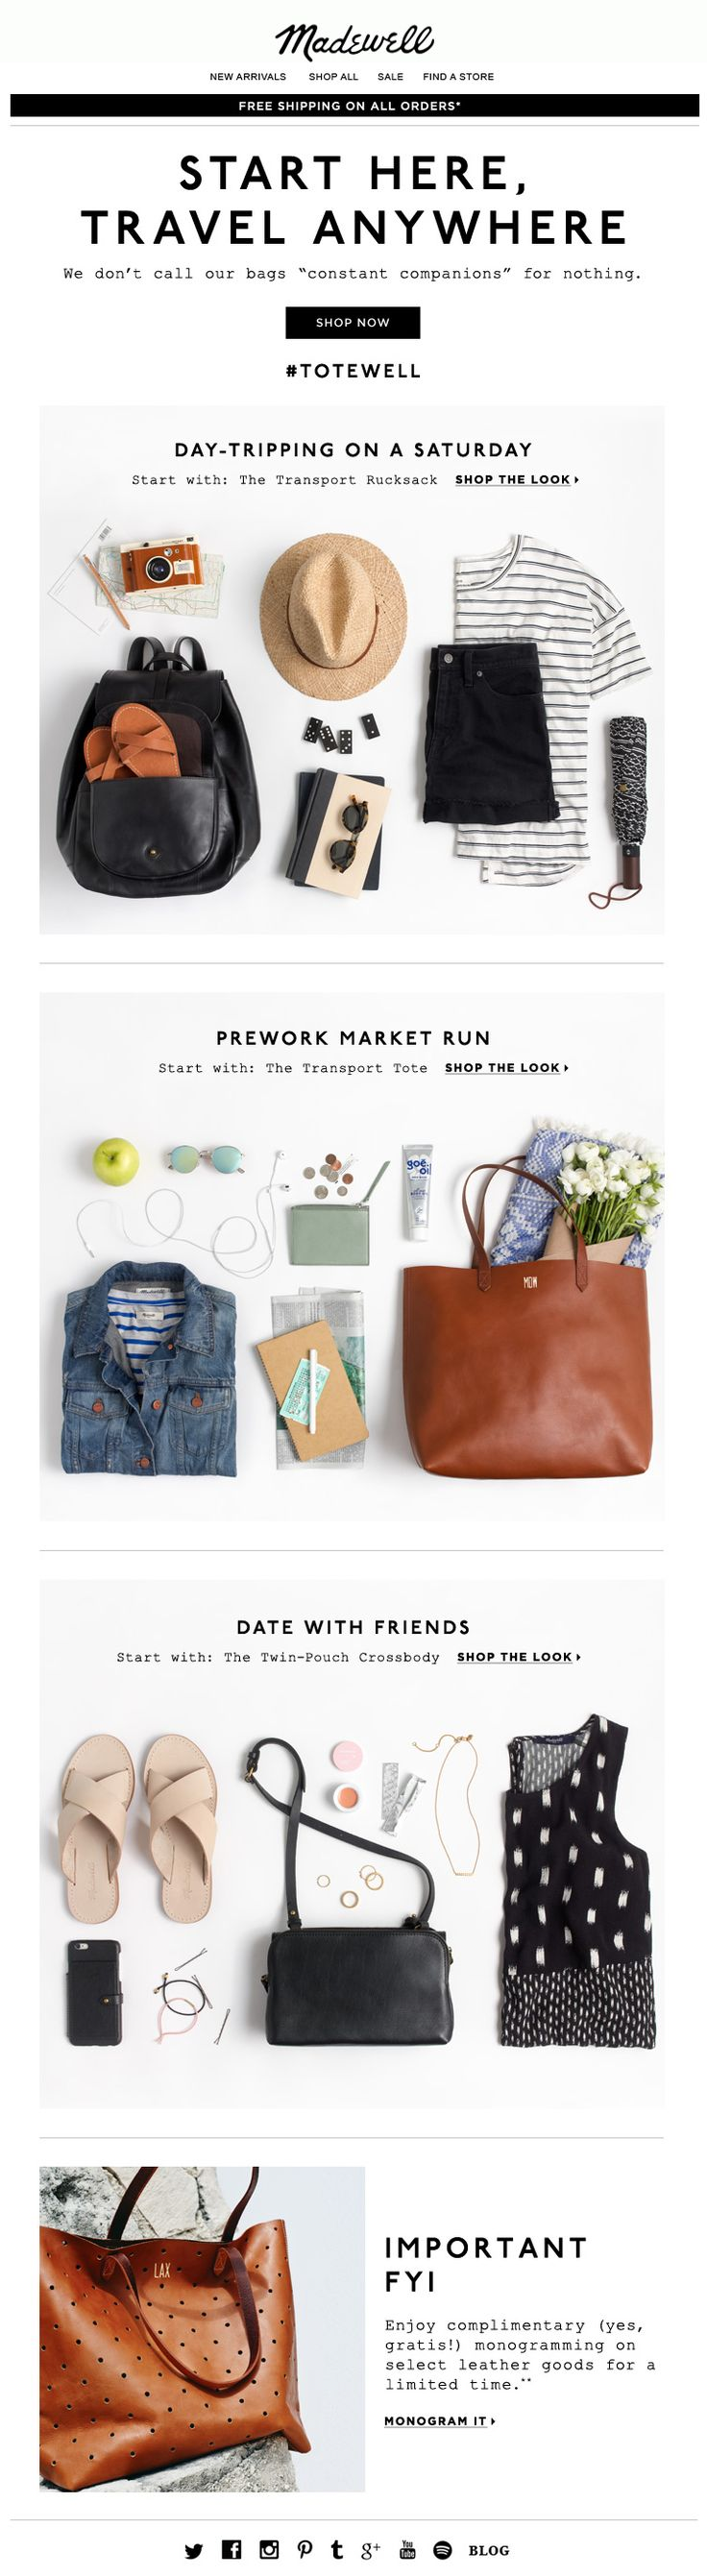 Online Boutique Email Newsletter Ideas - Madewell | newsletter | fashion email…